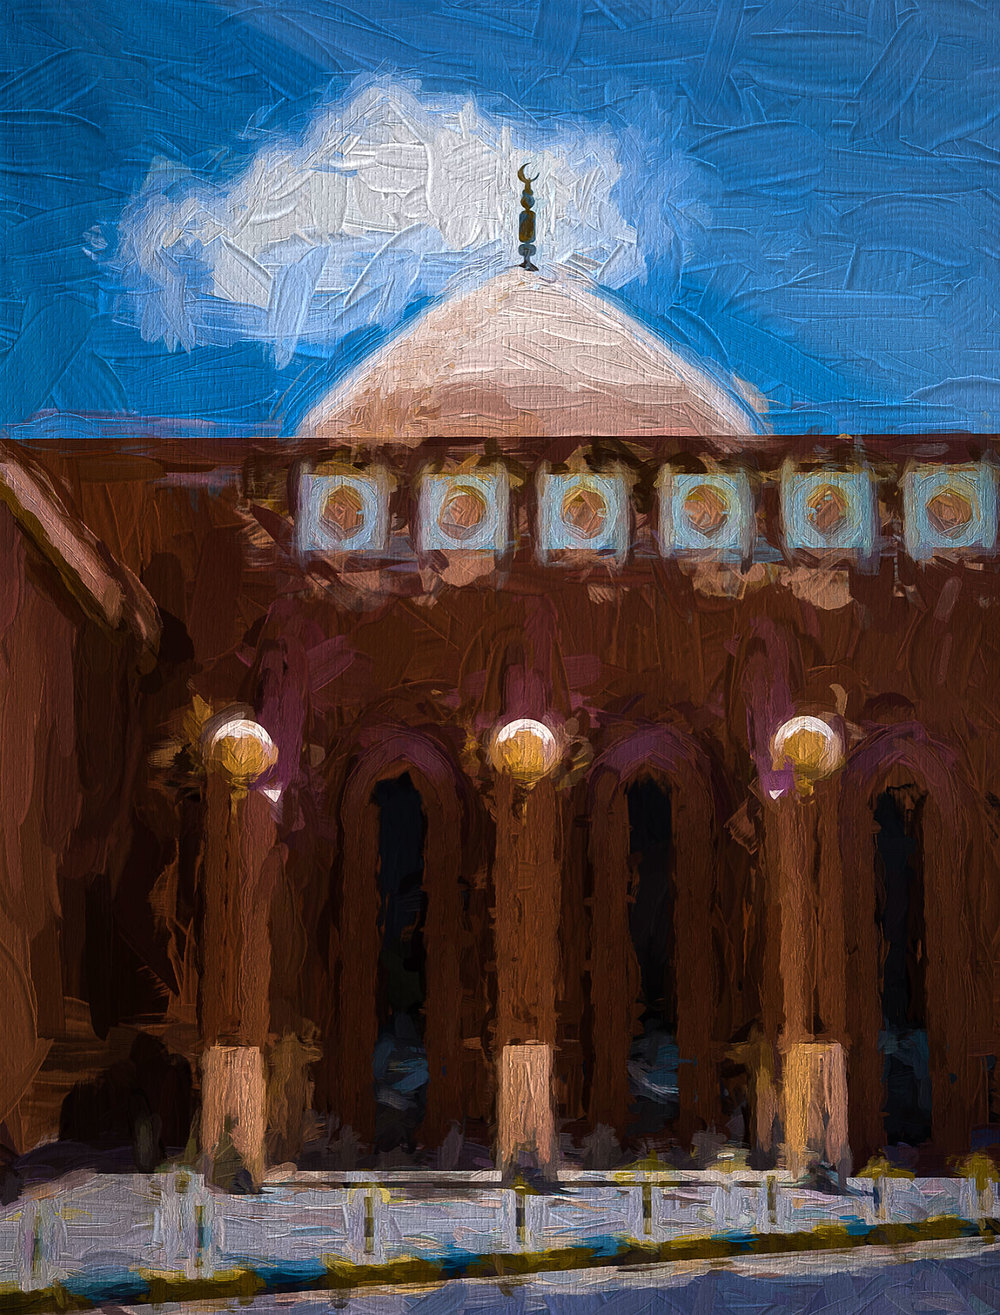 The Mosque with Cloud